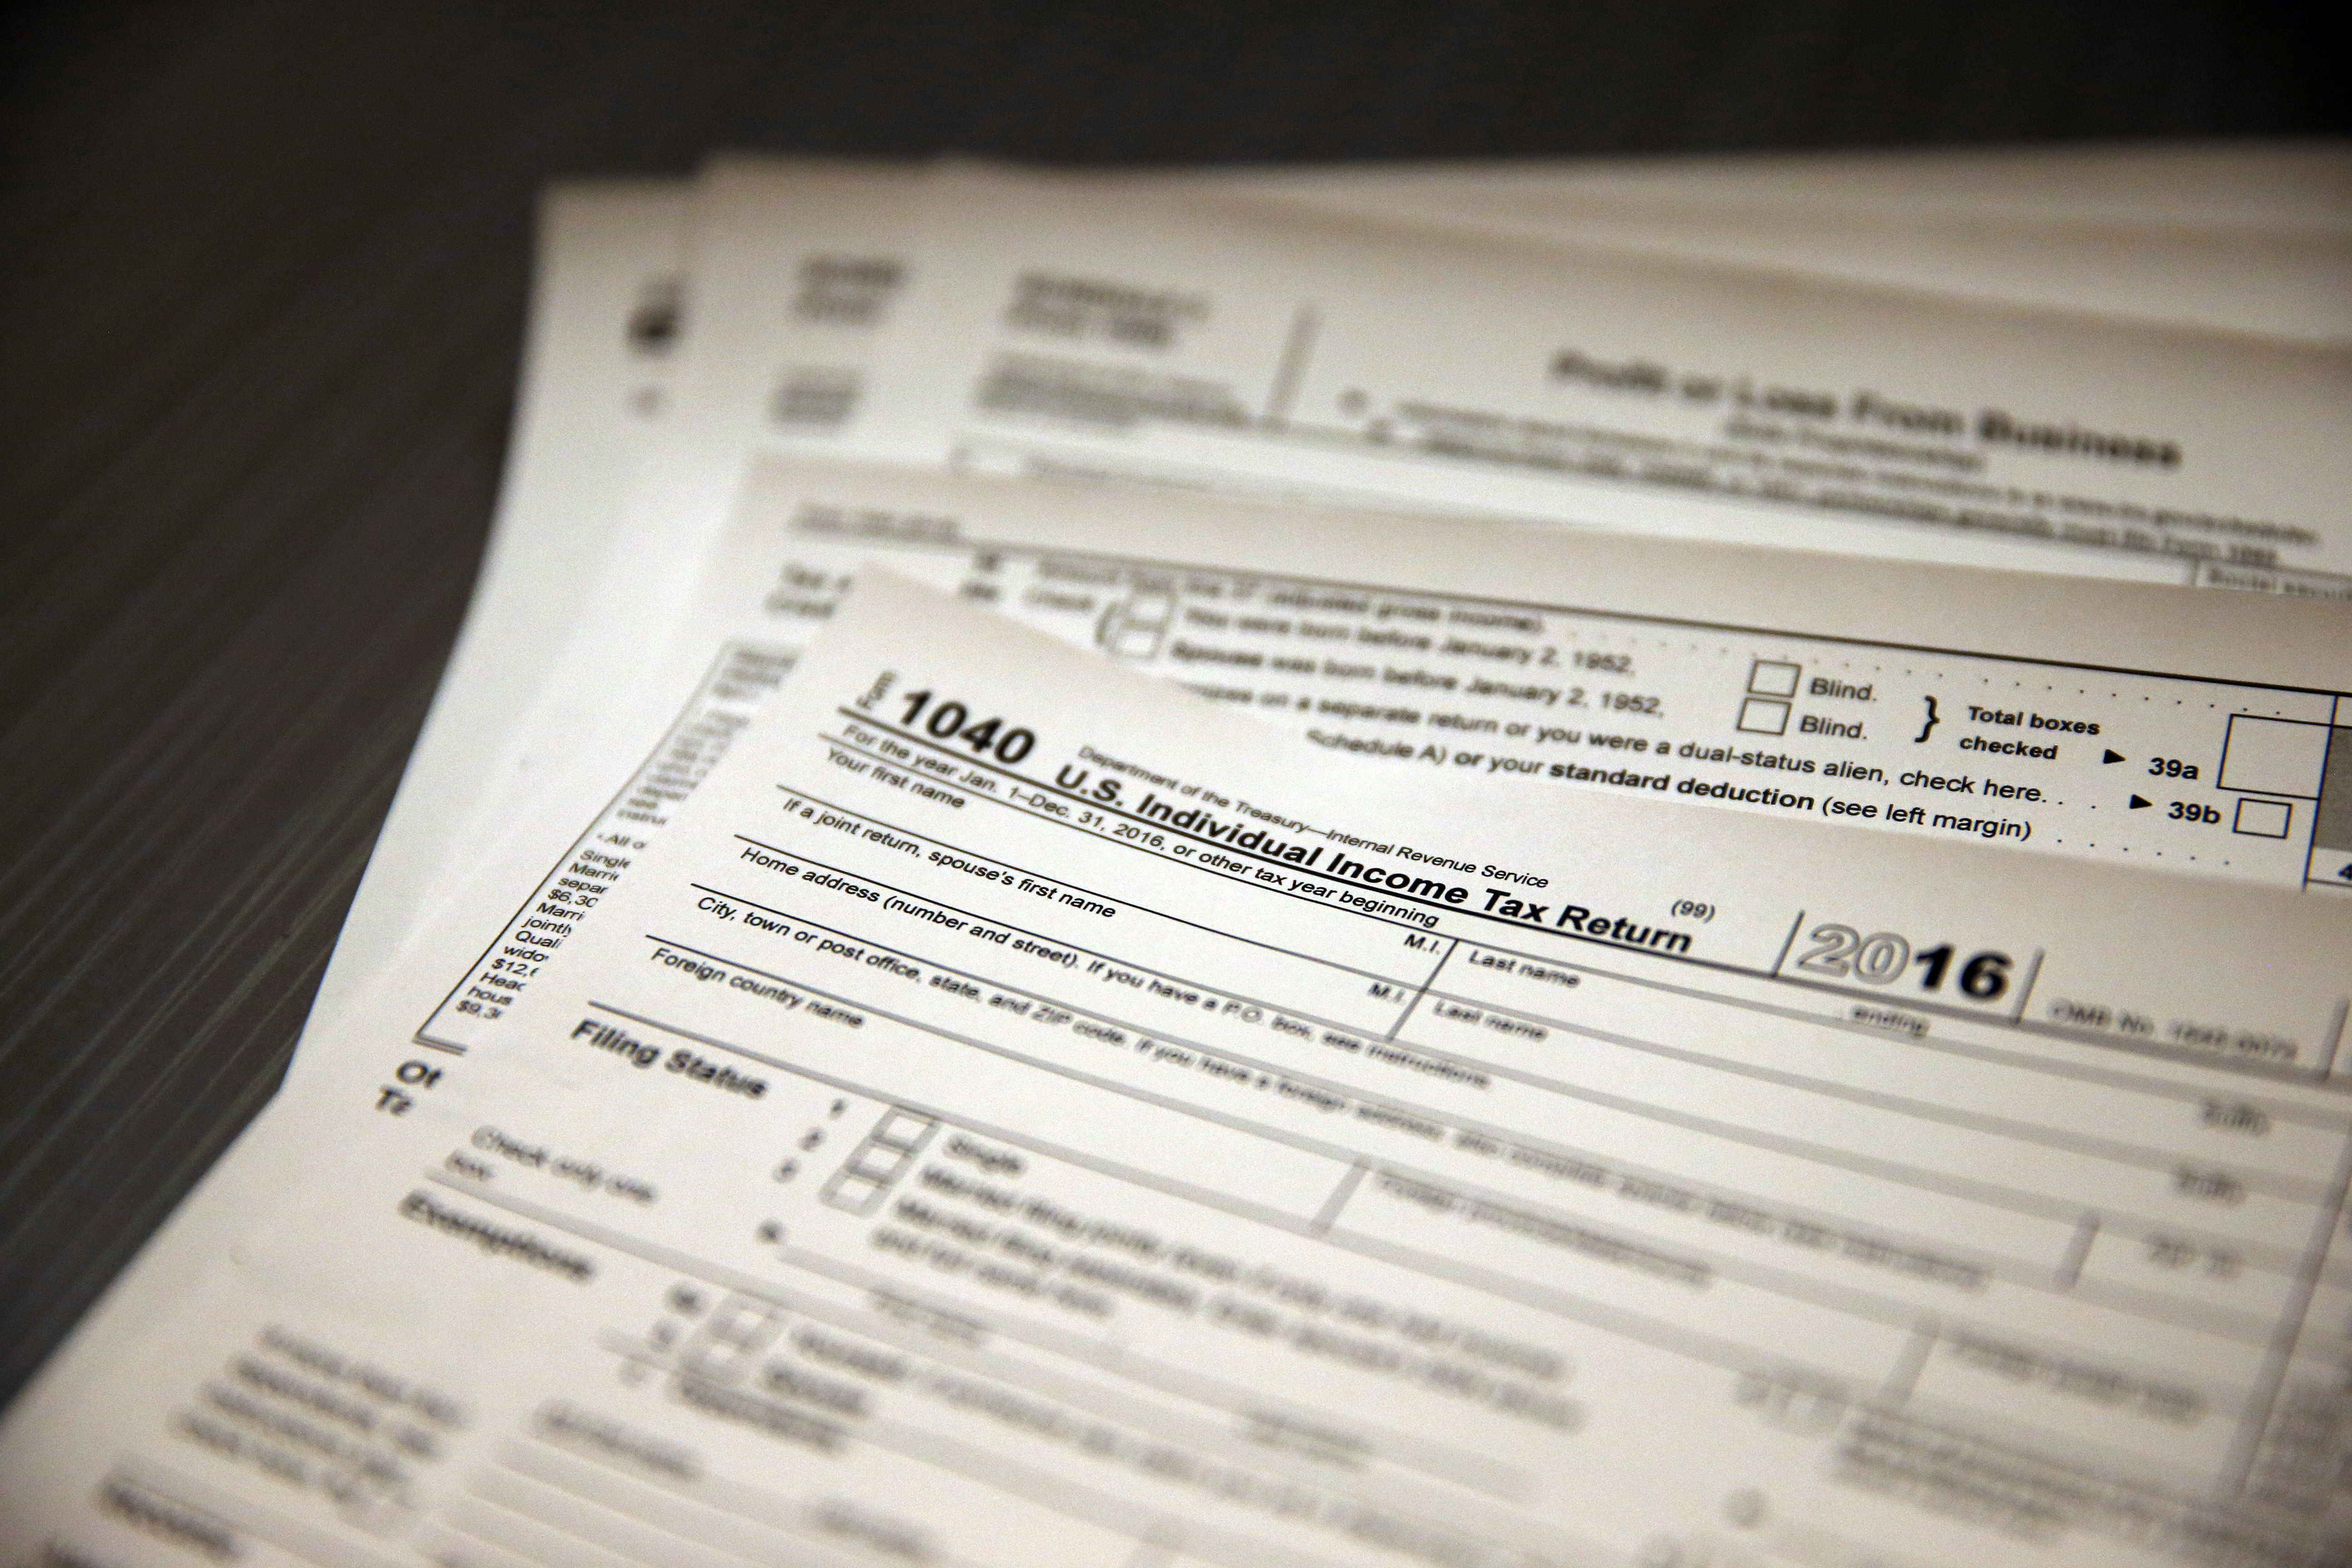 Irs Offers Extended Customer Service Hours This Weekend To Get A Jump On Filings Washington Times